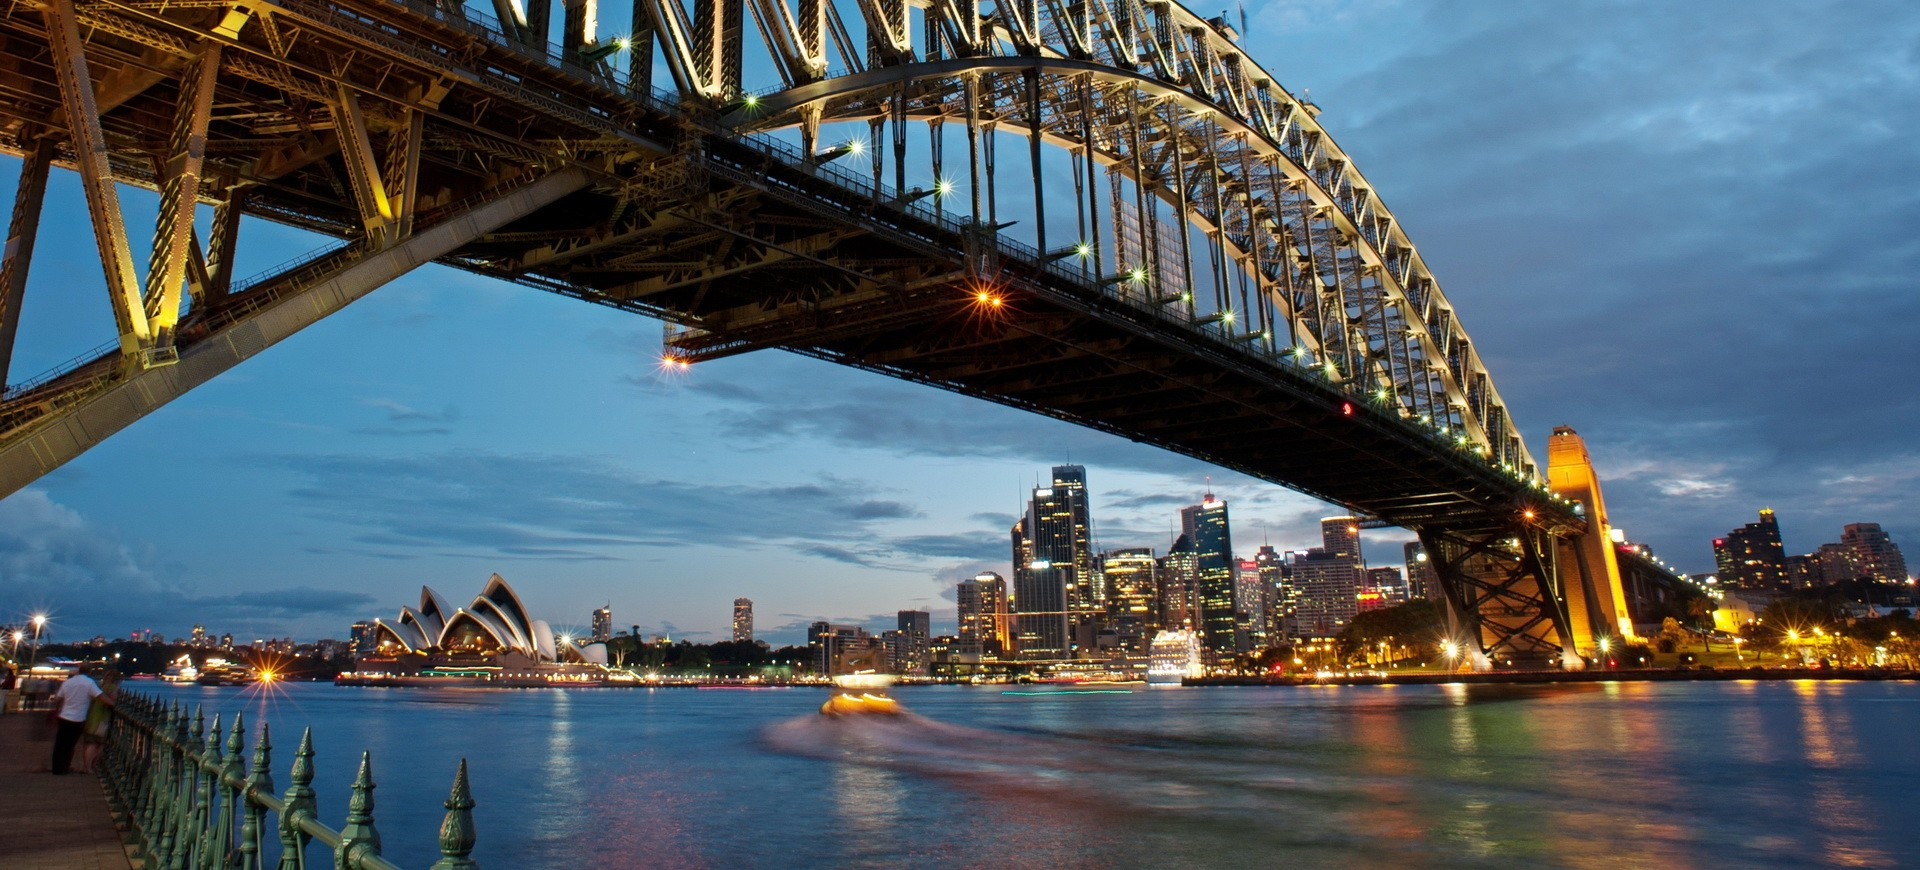 Sydney Harbour Bridge by night en Australie